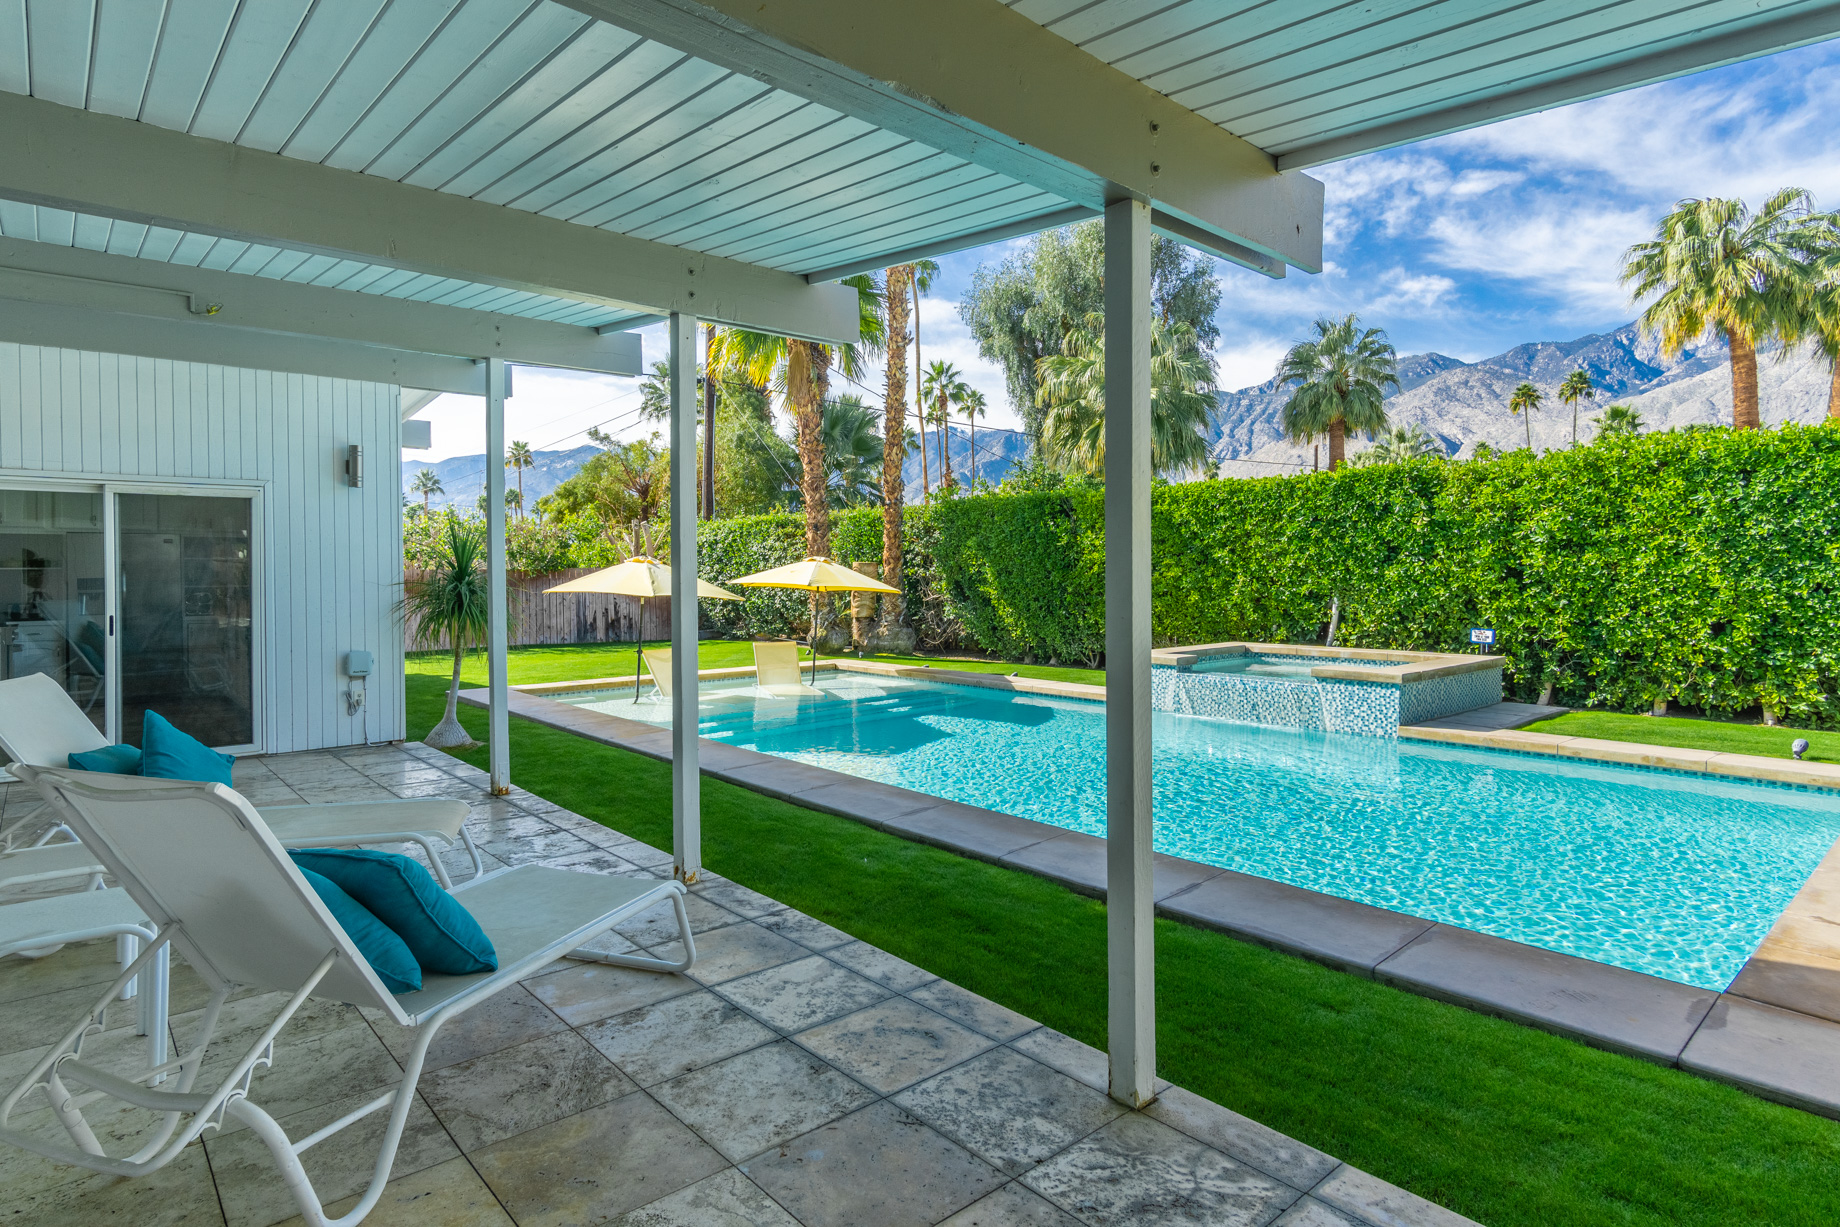 Palm Springs California Swimming Pool with view